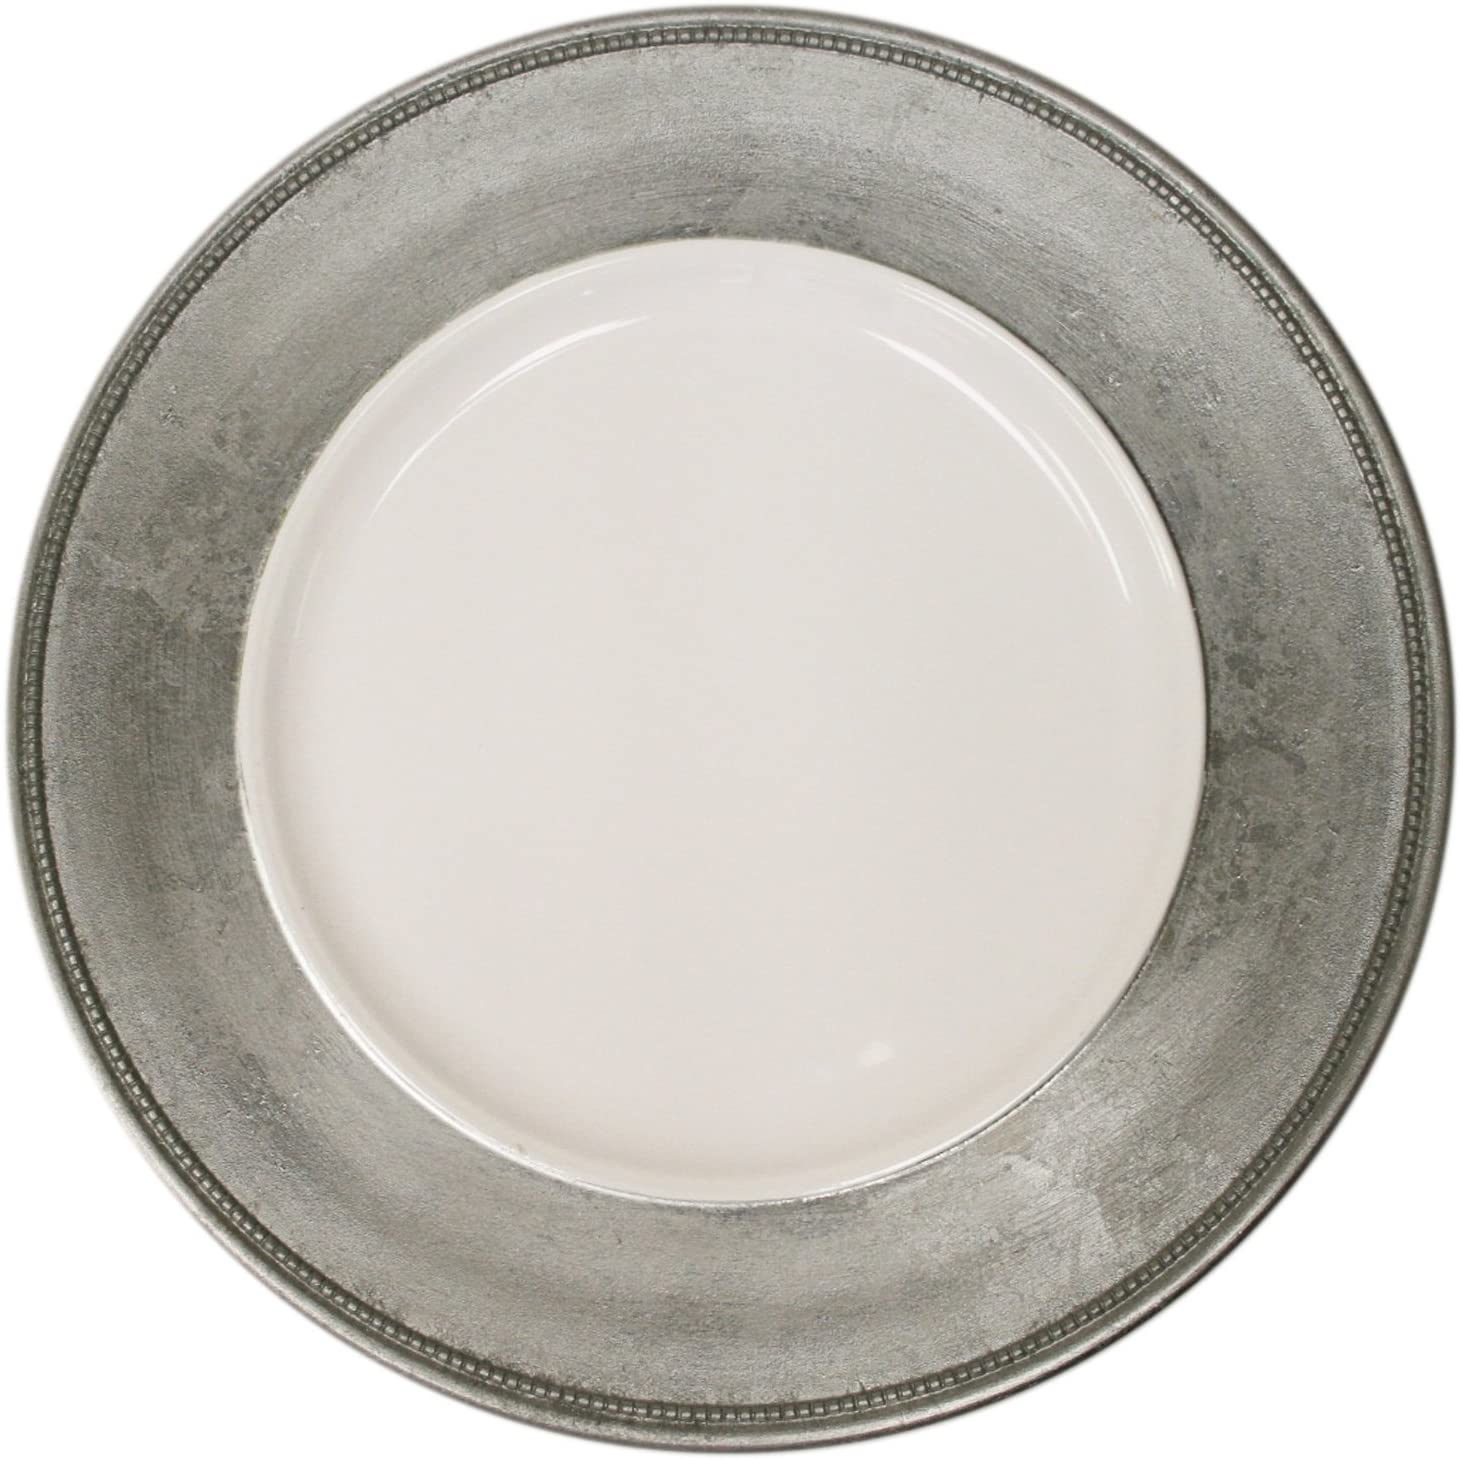 Silver Rim with White Center Charger Plate